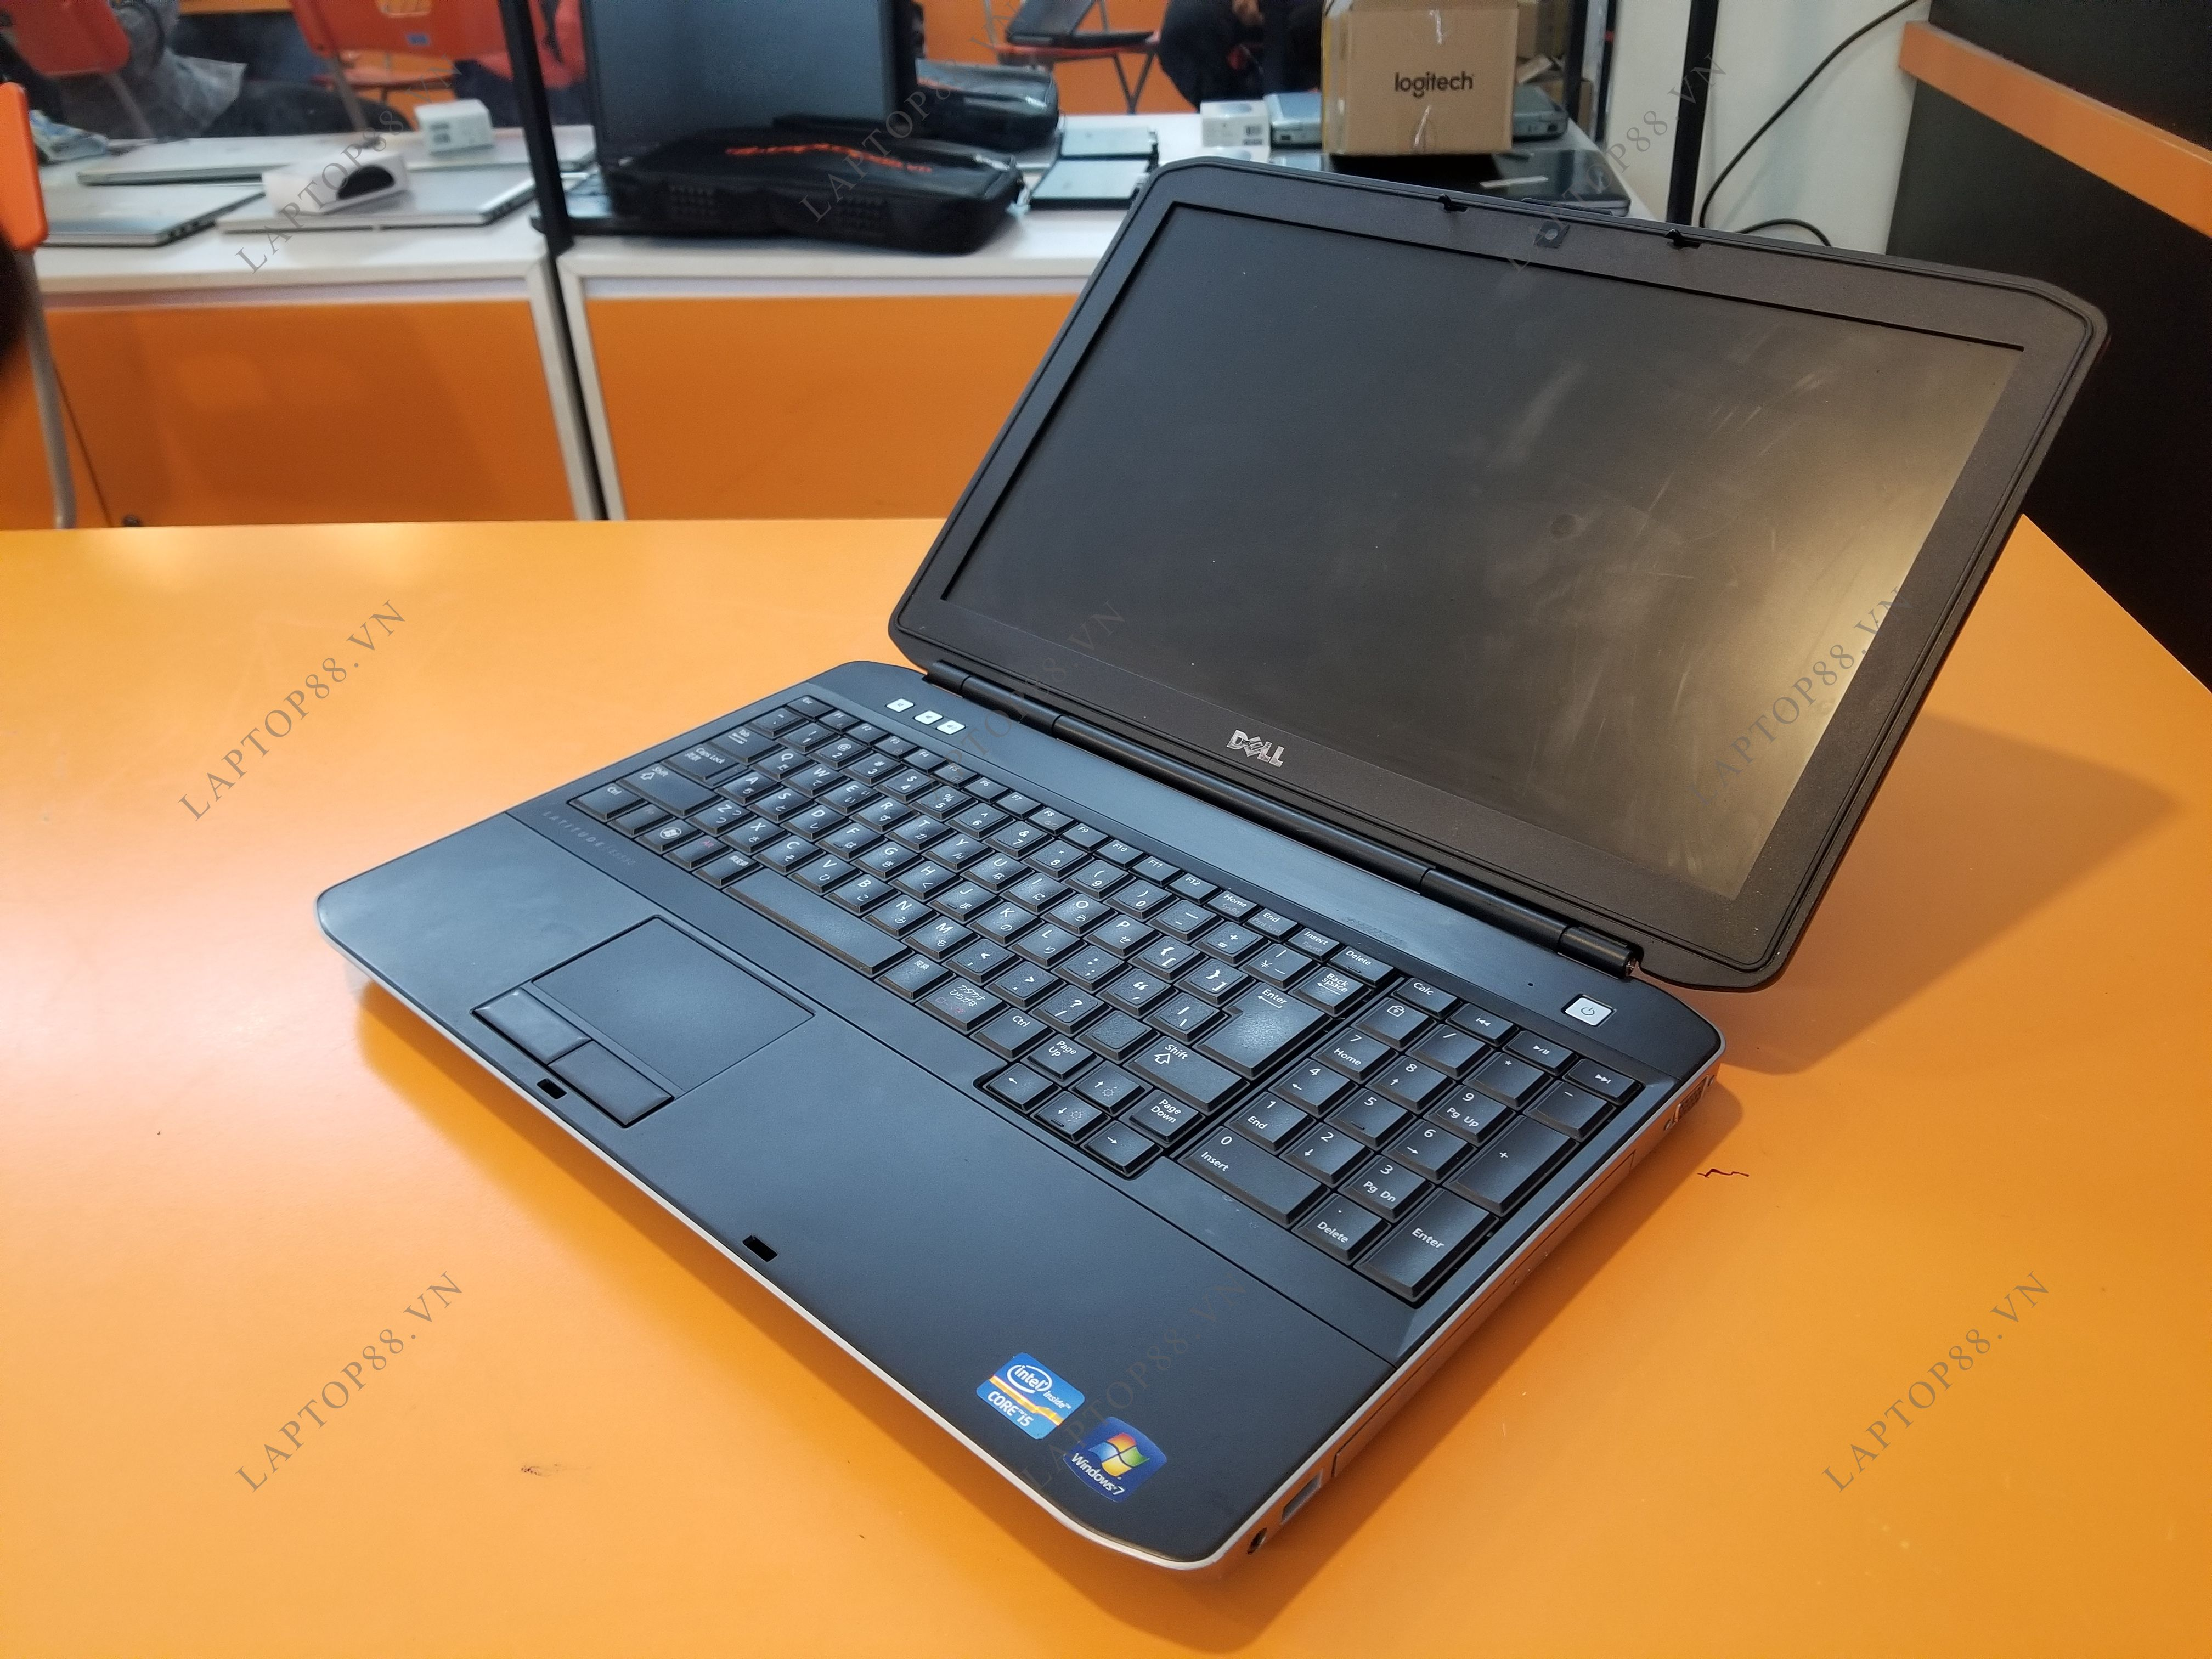 Laptop Dell Latitude E5530 (Core i3 3110M, RAM 4GB, HDD 250GB, Intel HD Graphics 4000, 15.6 inch)